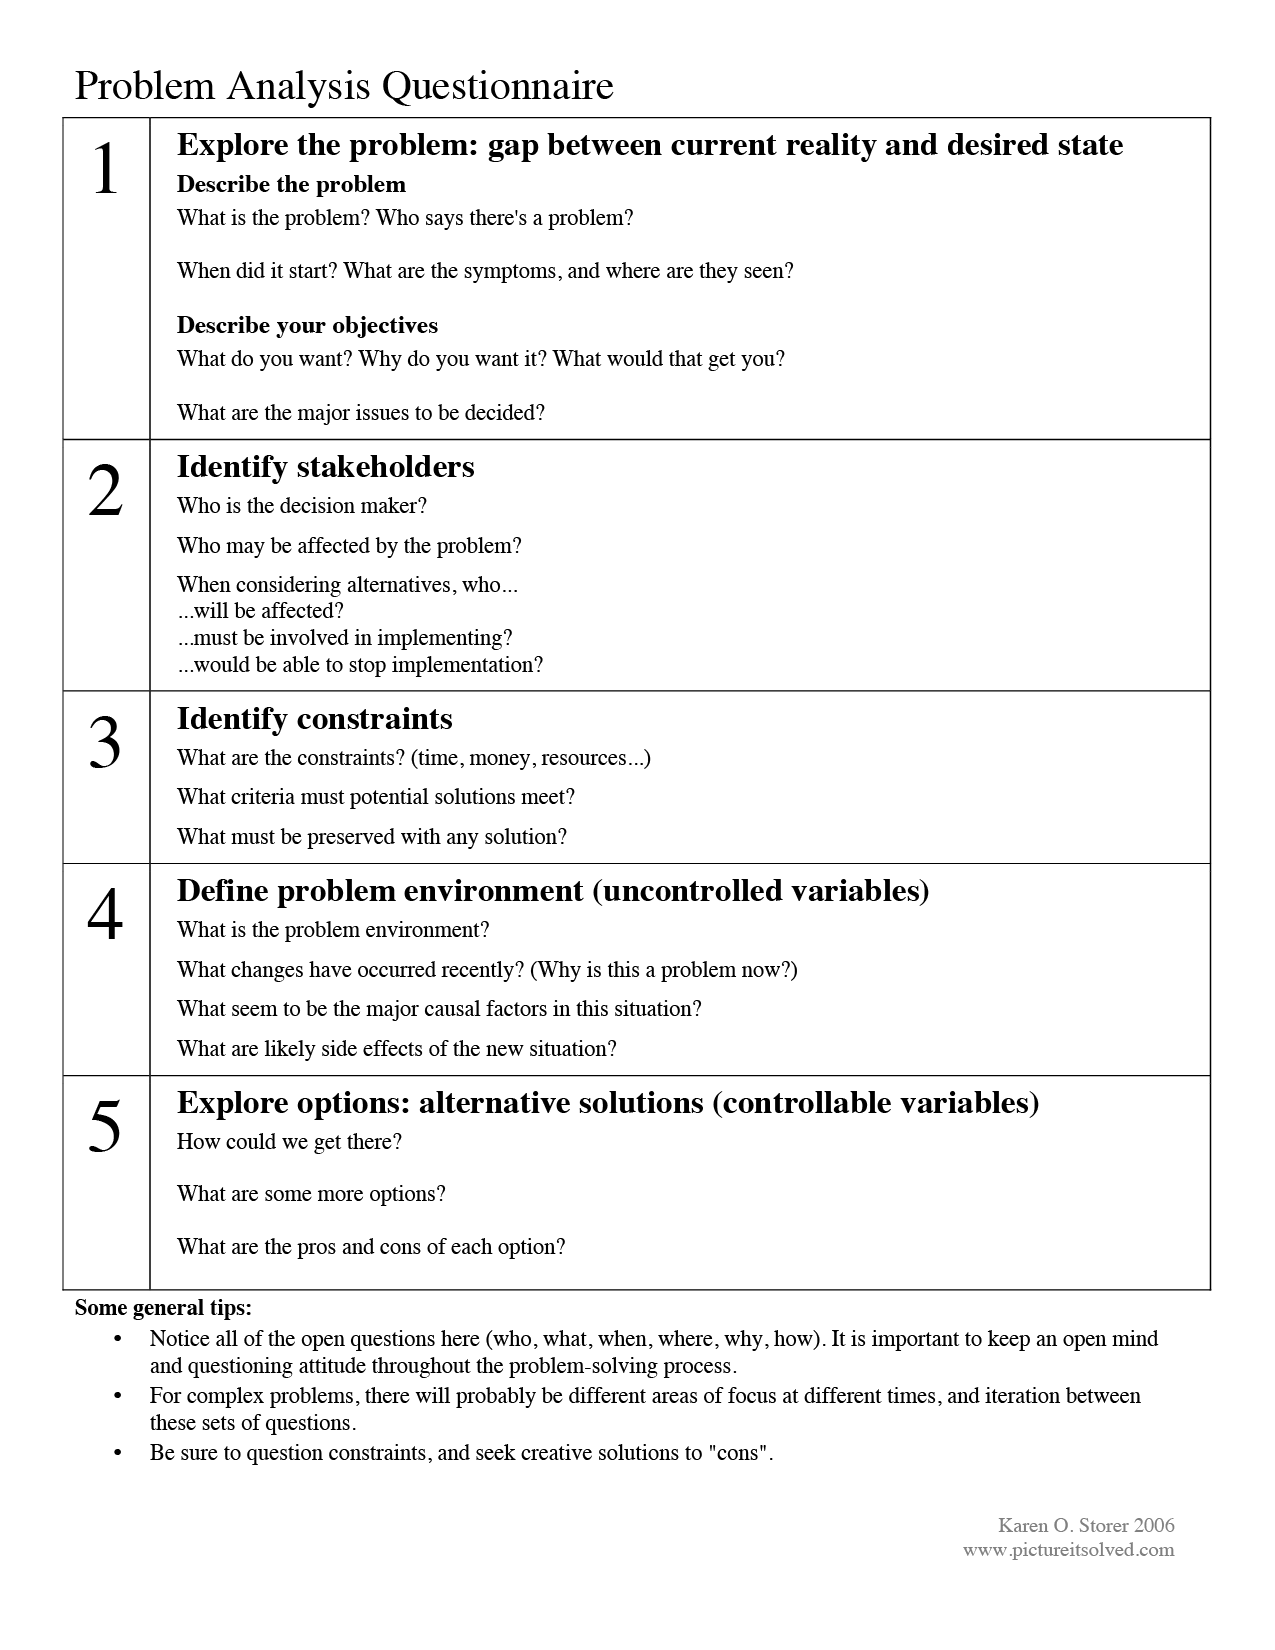 Problem solving basics – Social Problem Solving Worksheets